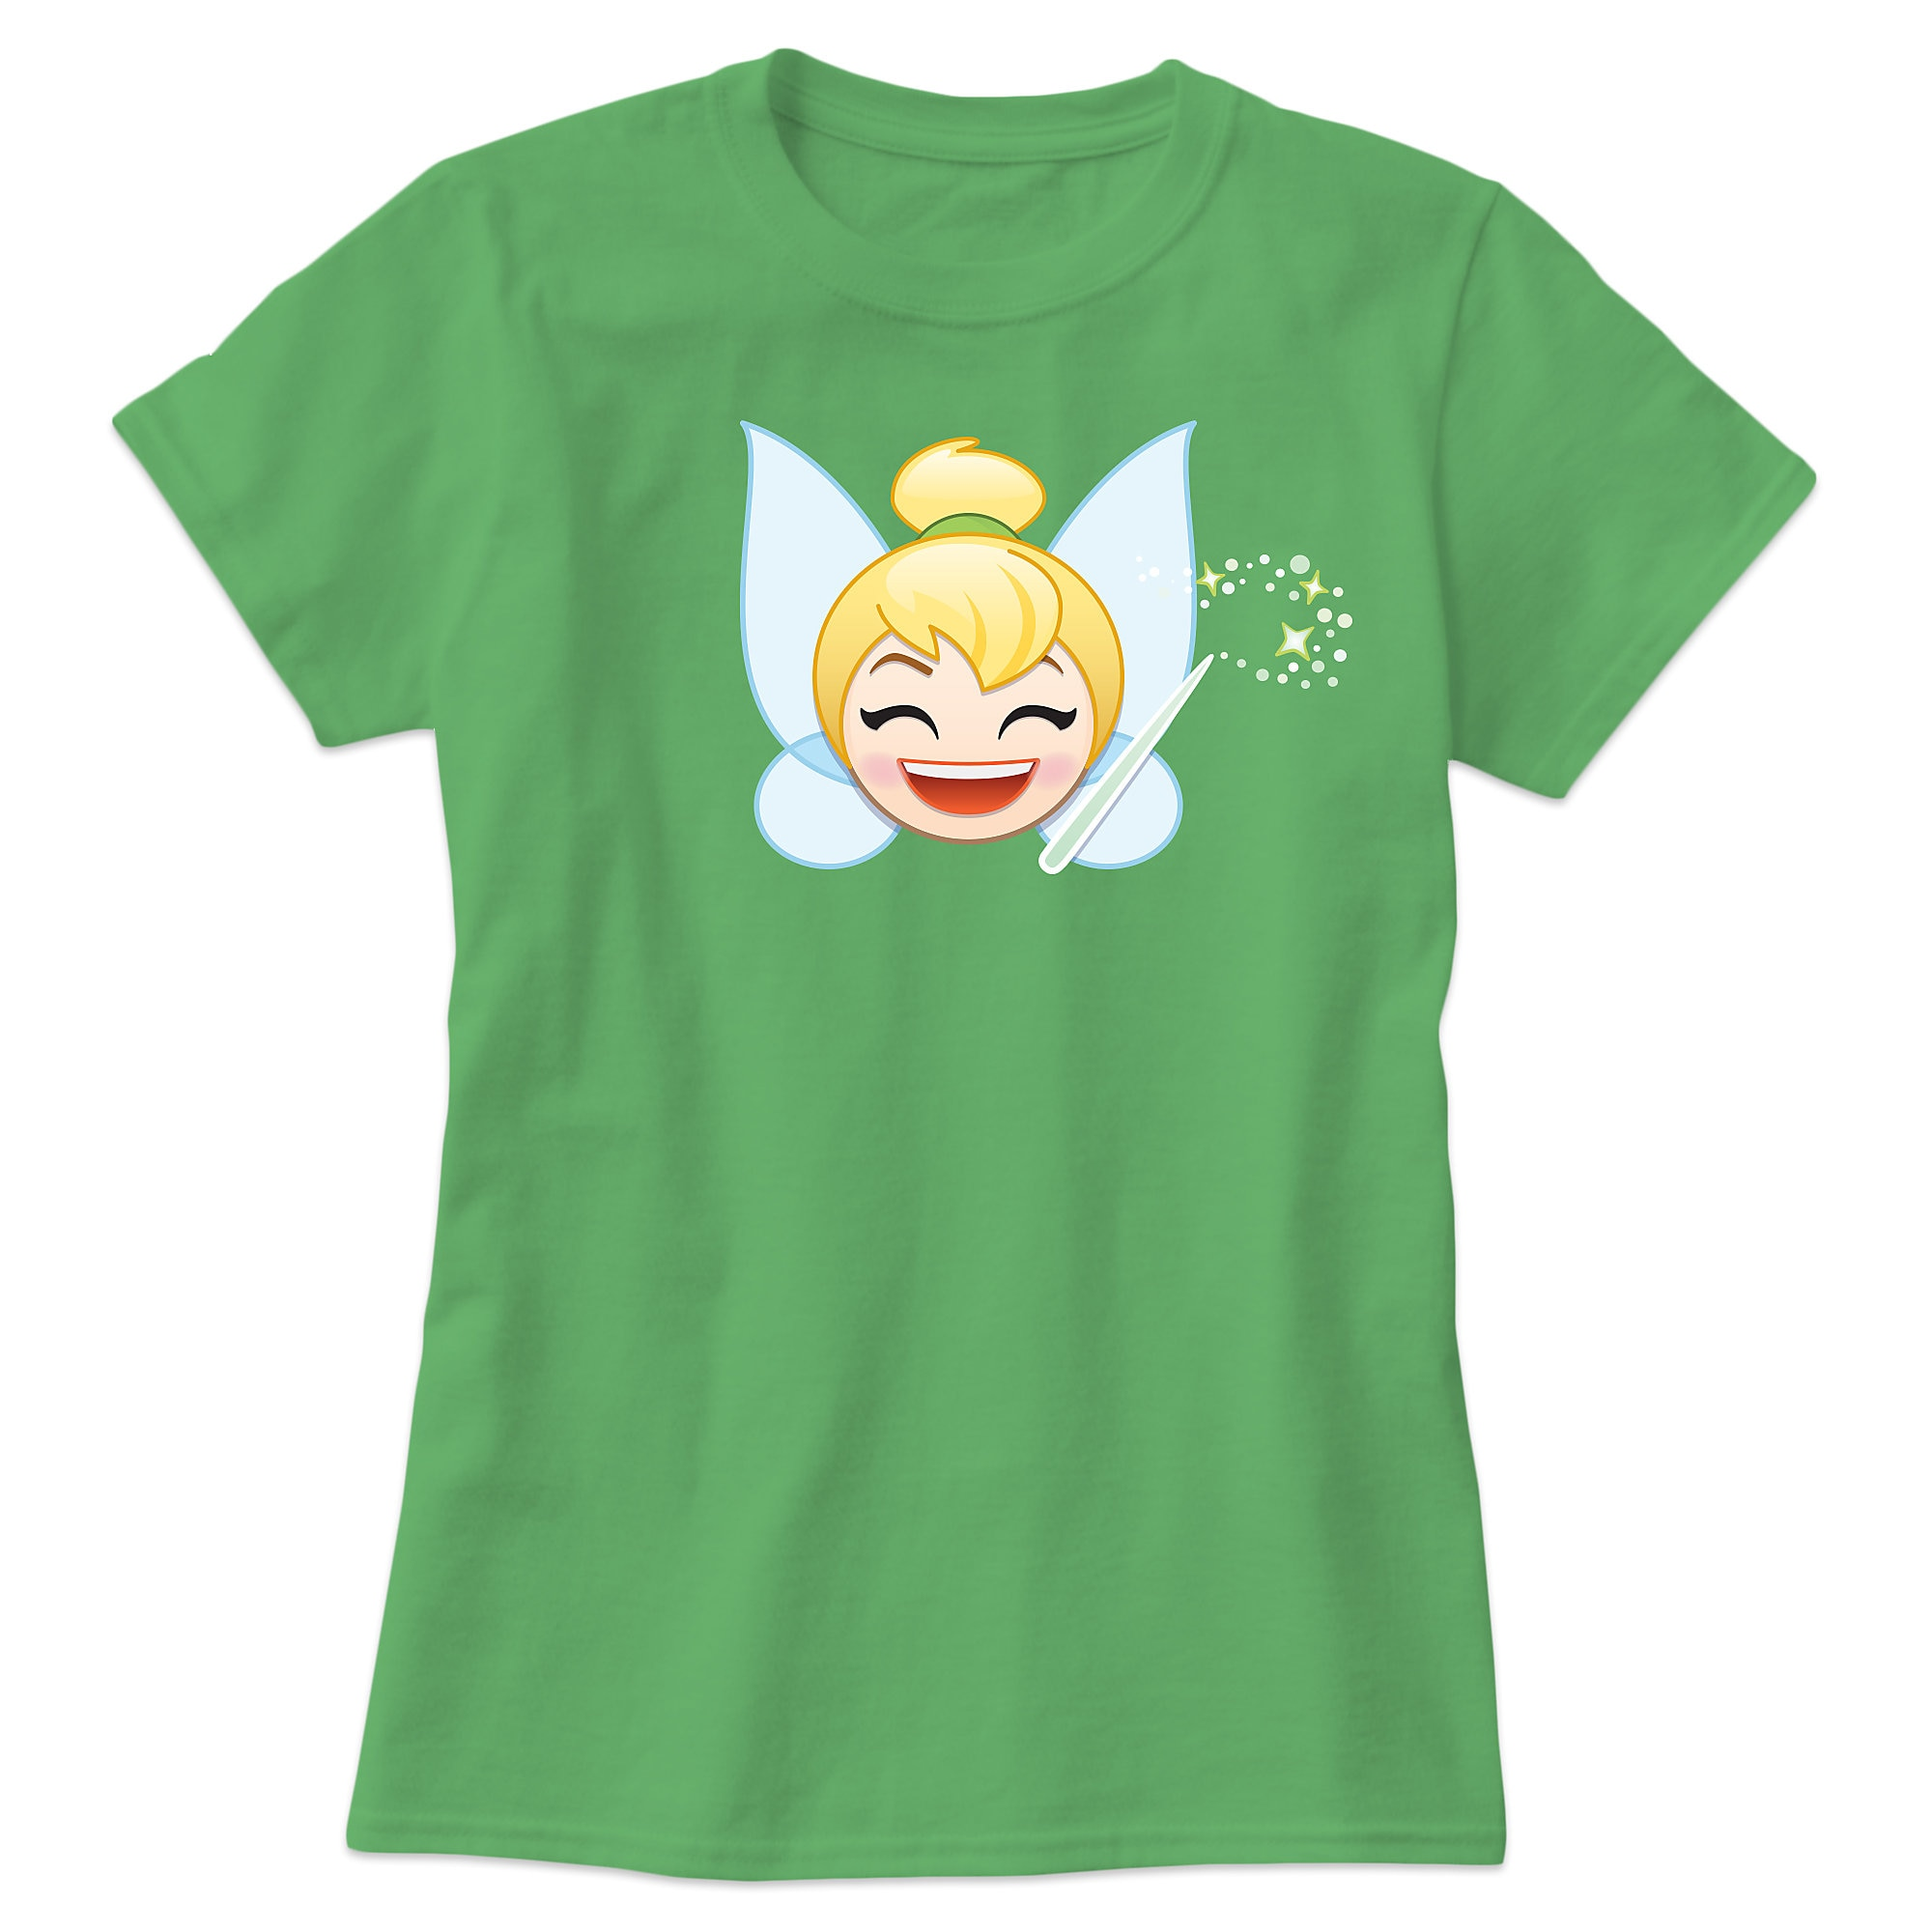 Tinker Bell Emoji Tee for Women - Customizable